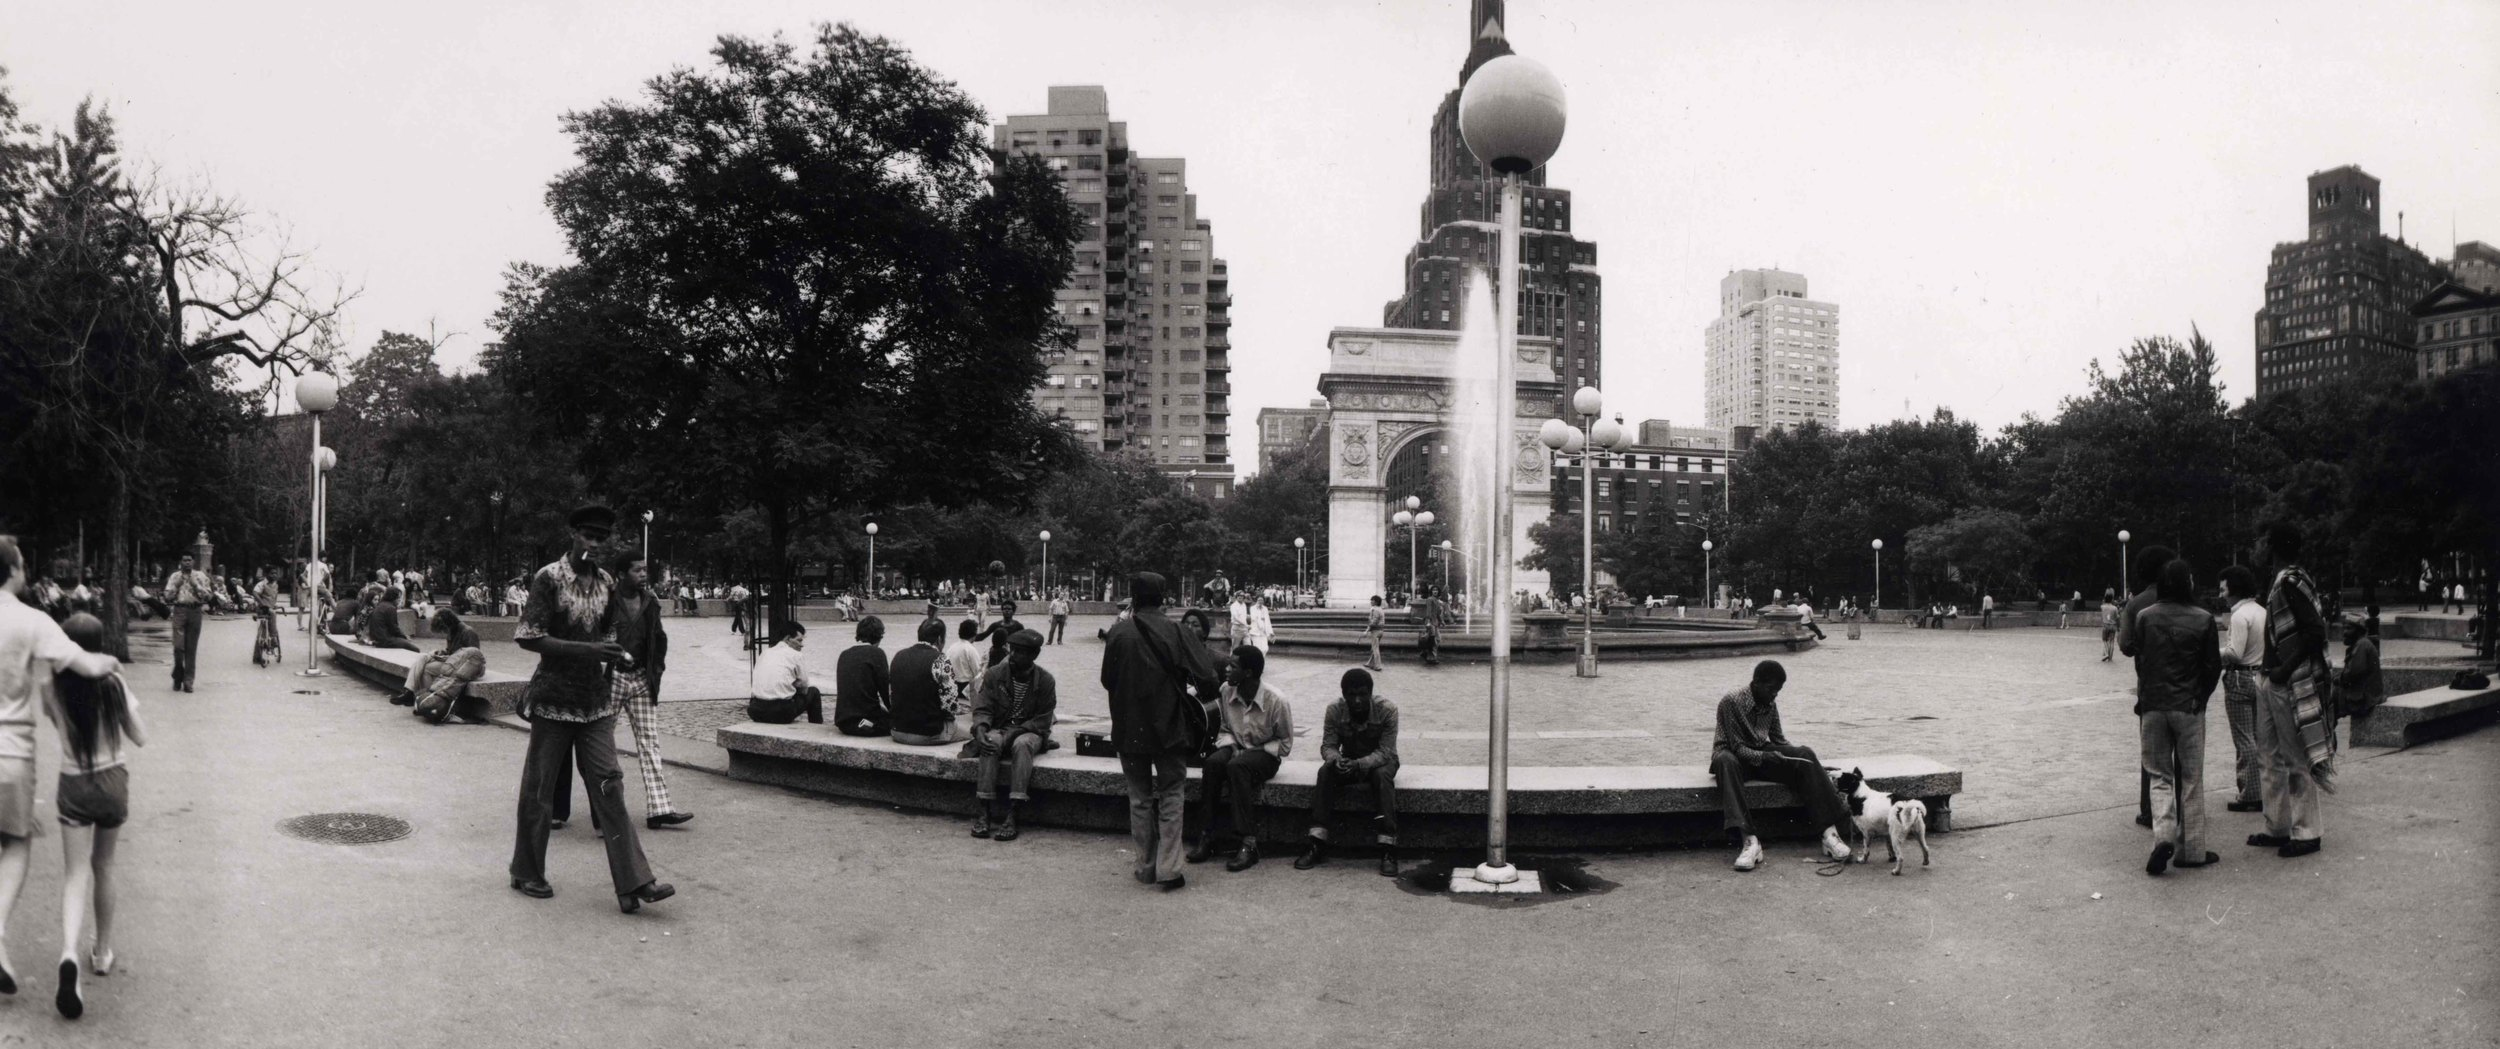 15_89_People hanging out in a park with trees and fountain_Dan Wynn Archive.jpeg